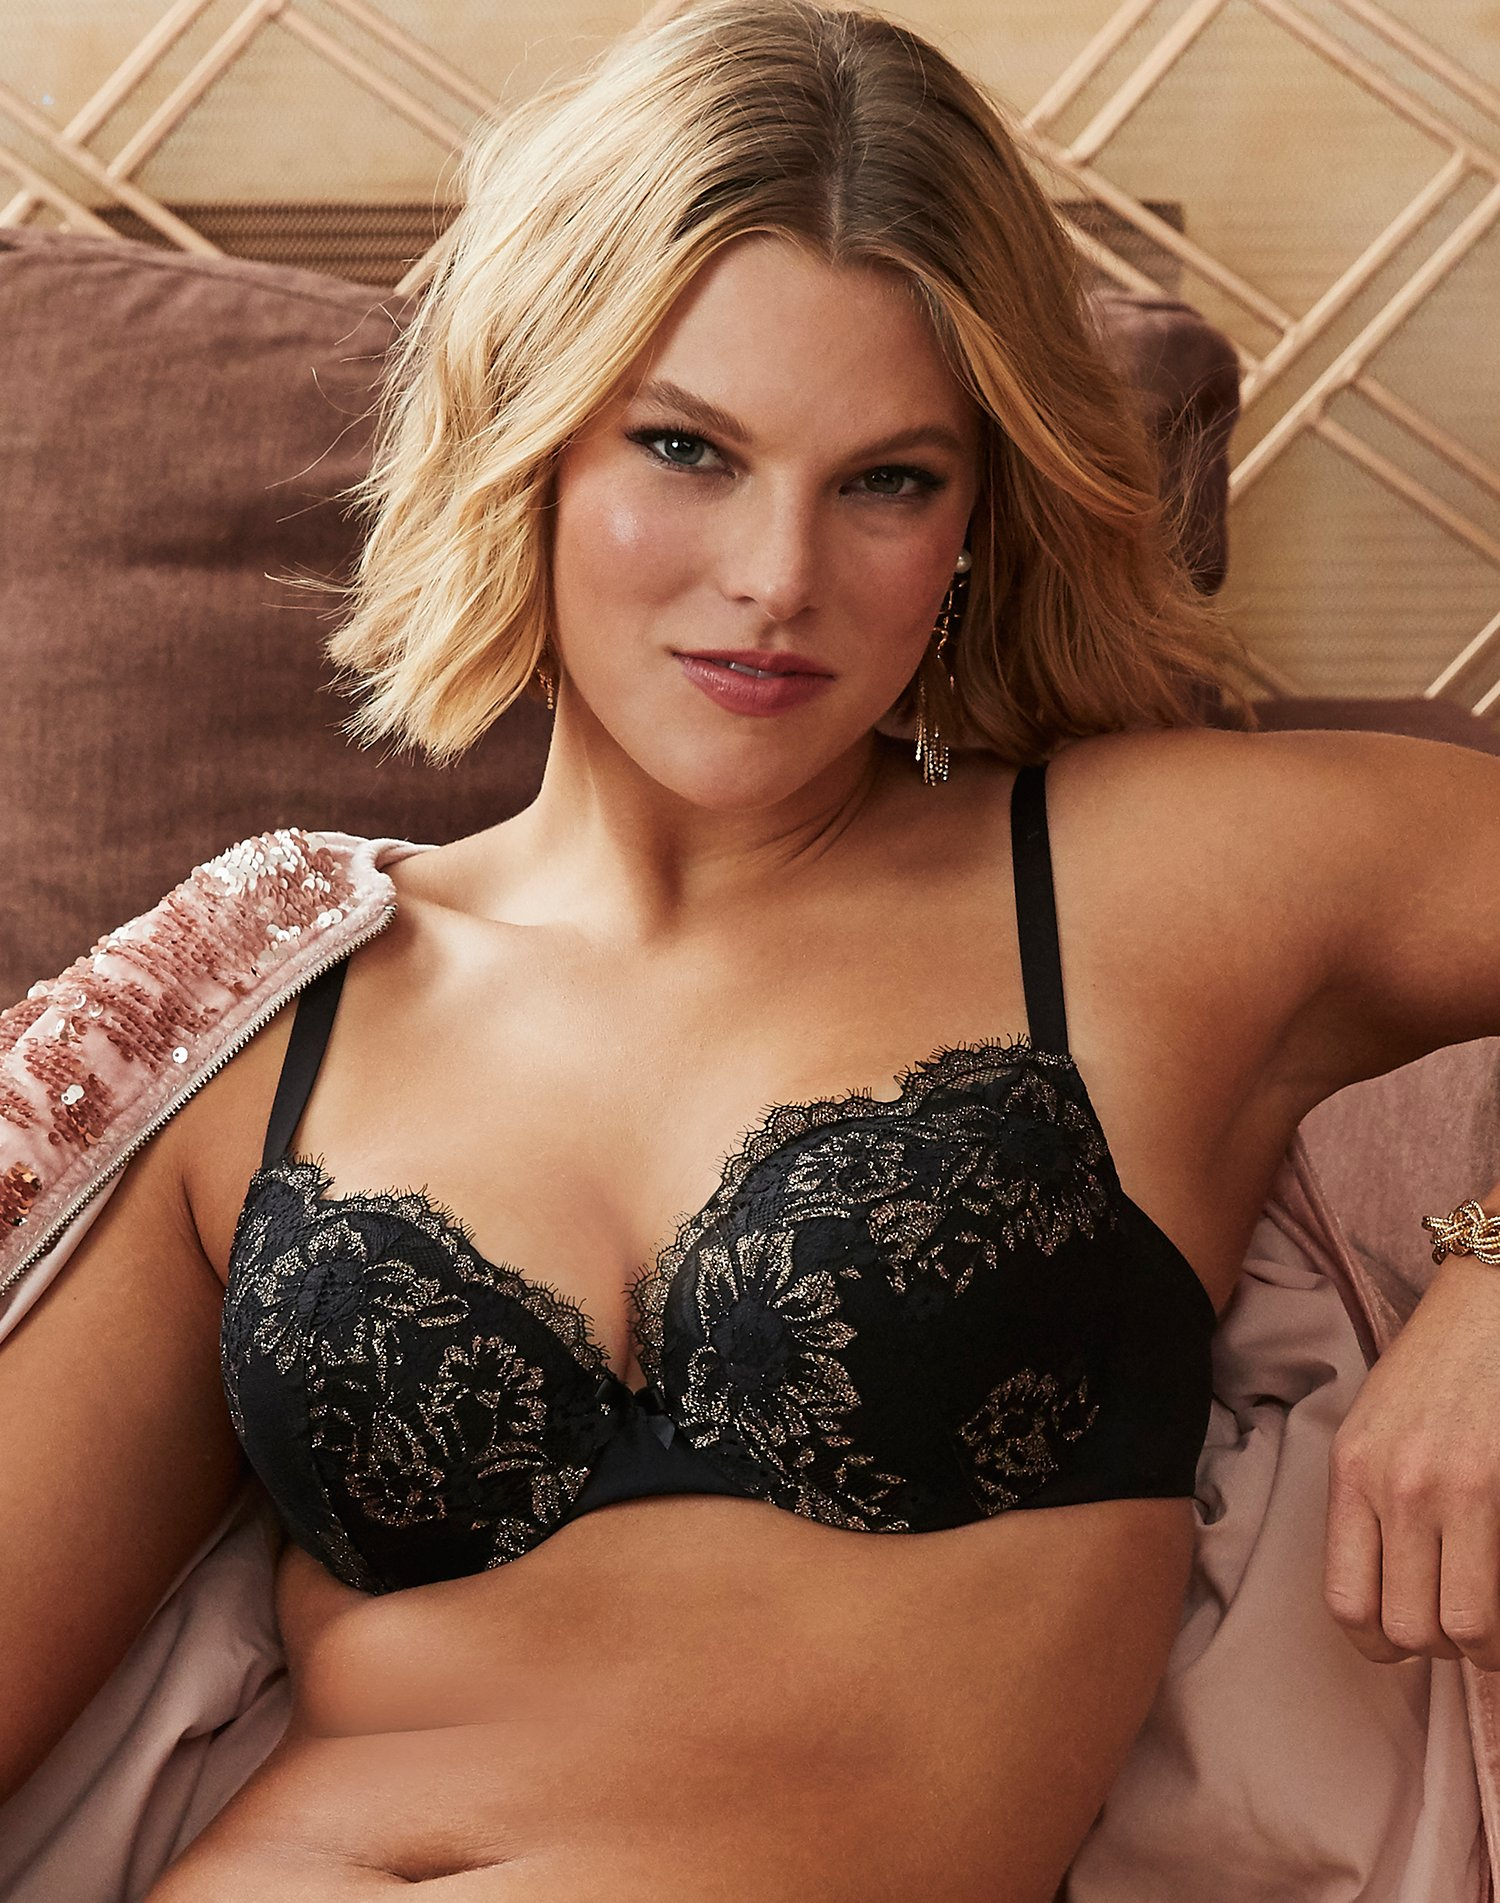 Maidenform Full Fit Underwire Comfort Devotion Smoothing Lace Nude Unlined 38DD